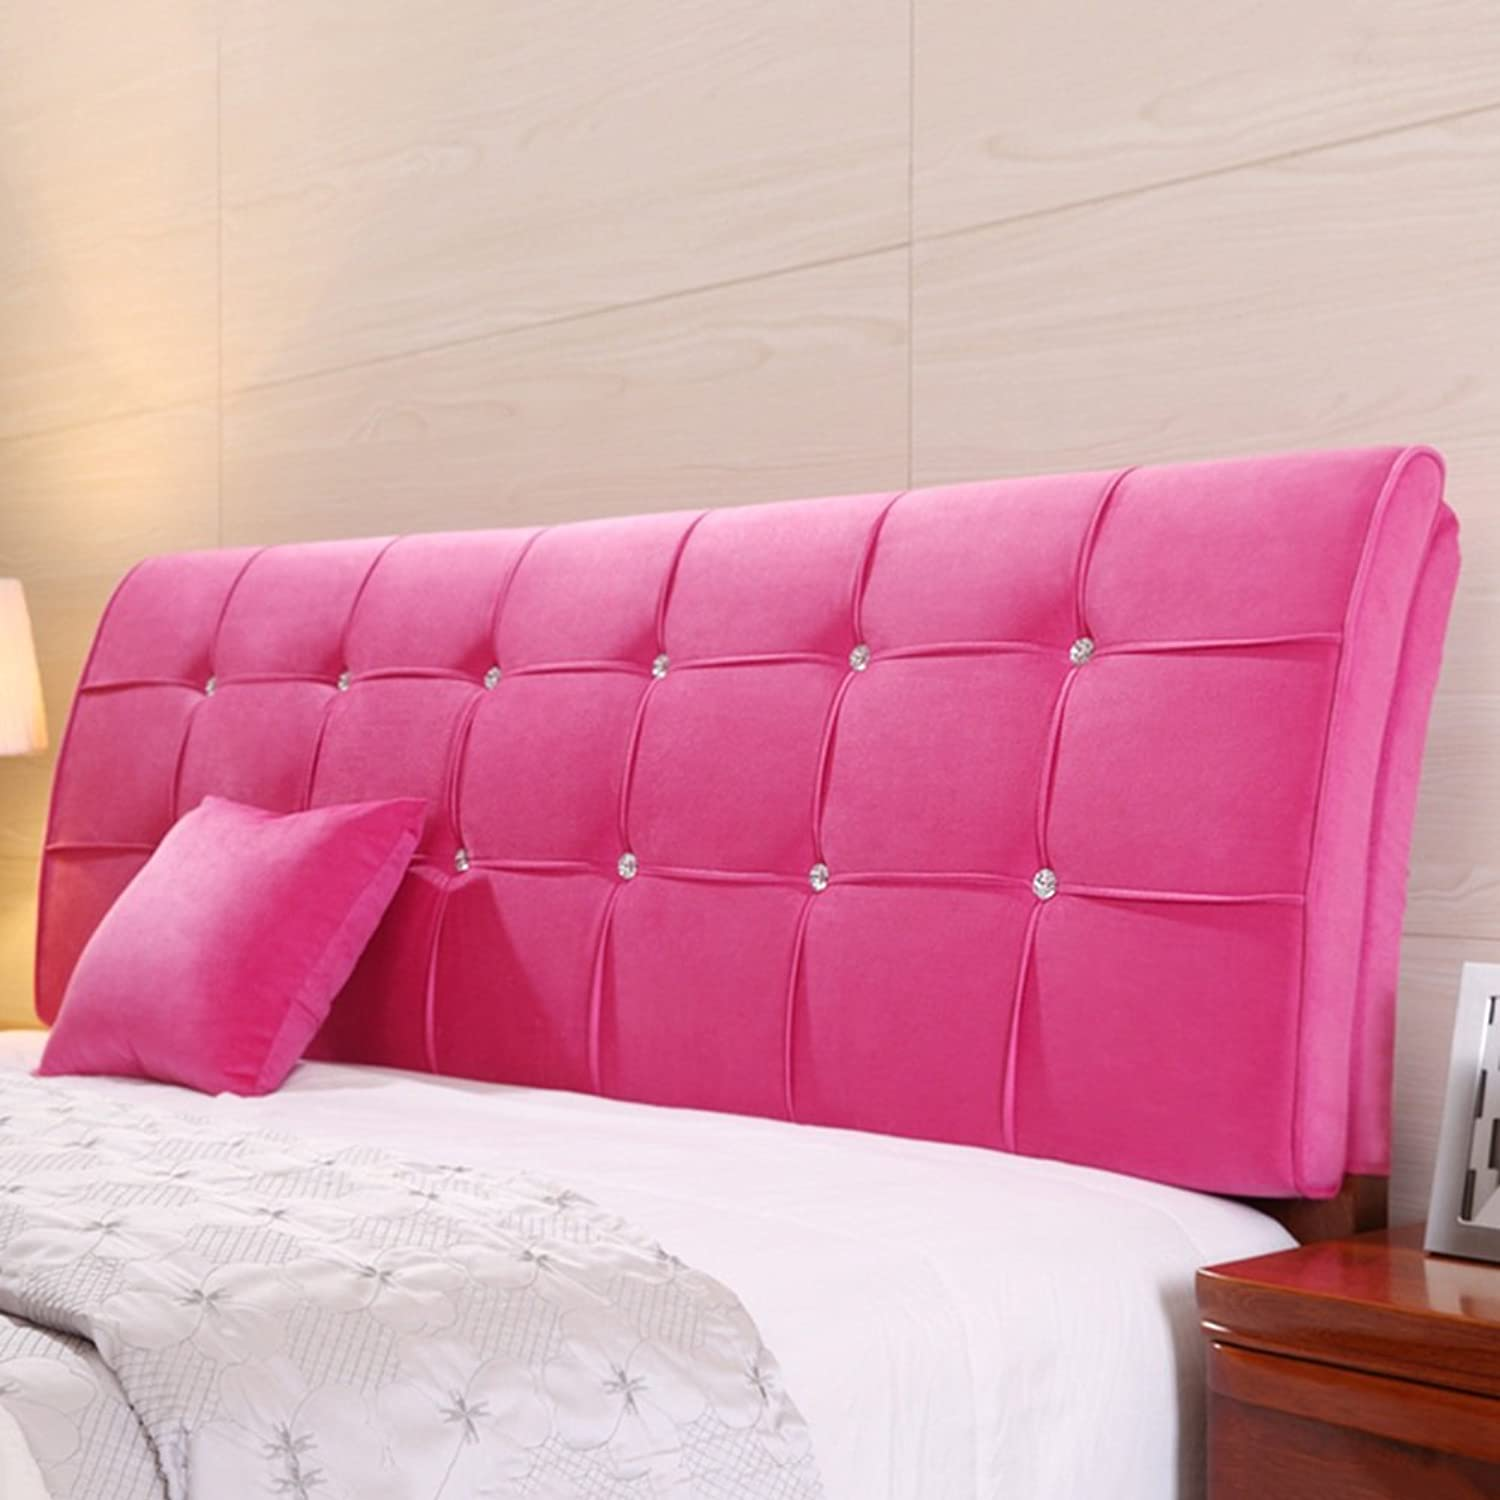 WENZHE Upholstered Fabric Headboard Bedside Cushion Pads Cover Bed Wedges Backrest Waist Pad Large Back Bed Cover Sofa Pillow Bedroom Lounge Multifunction Soft Case, There Are Headboards, Cloth, 62cm High, 5 colors, 8 Sizes Optional ( color   Pink , Size